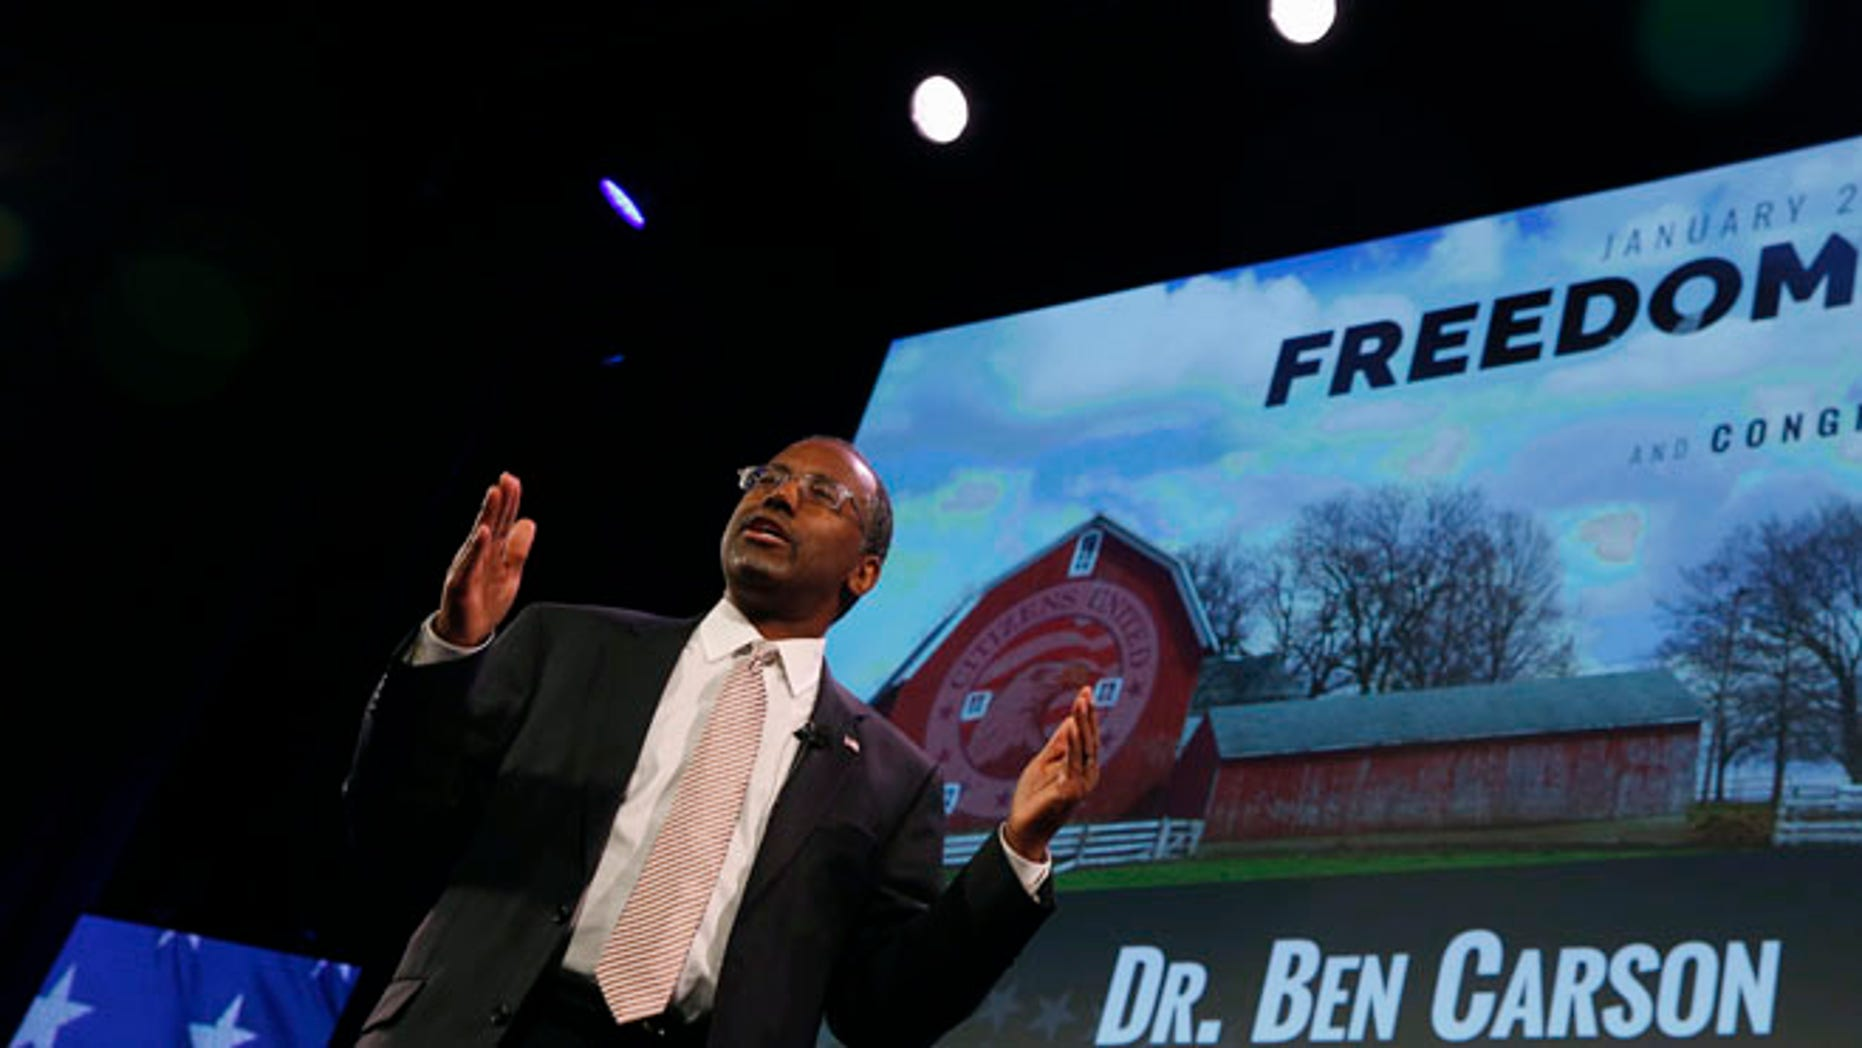 FILE:  January 24, 2015: Dr. Ben Carson speaks at the Freedom Summit in Des Moines, Iowa